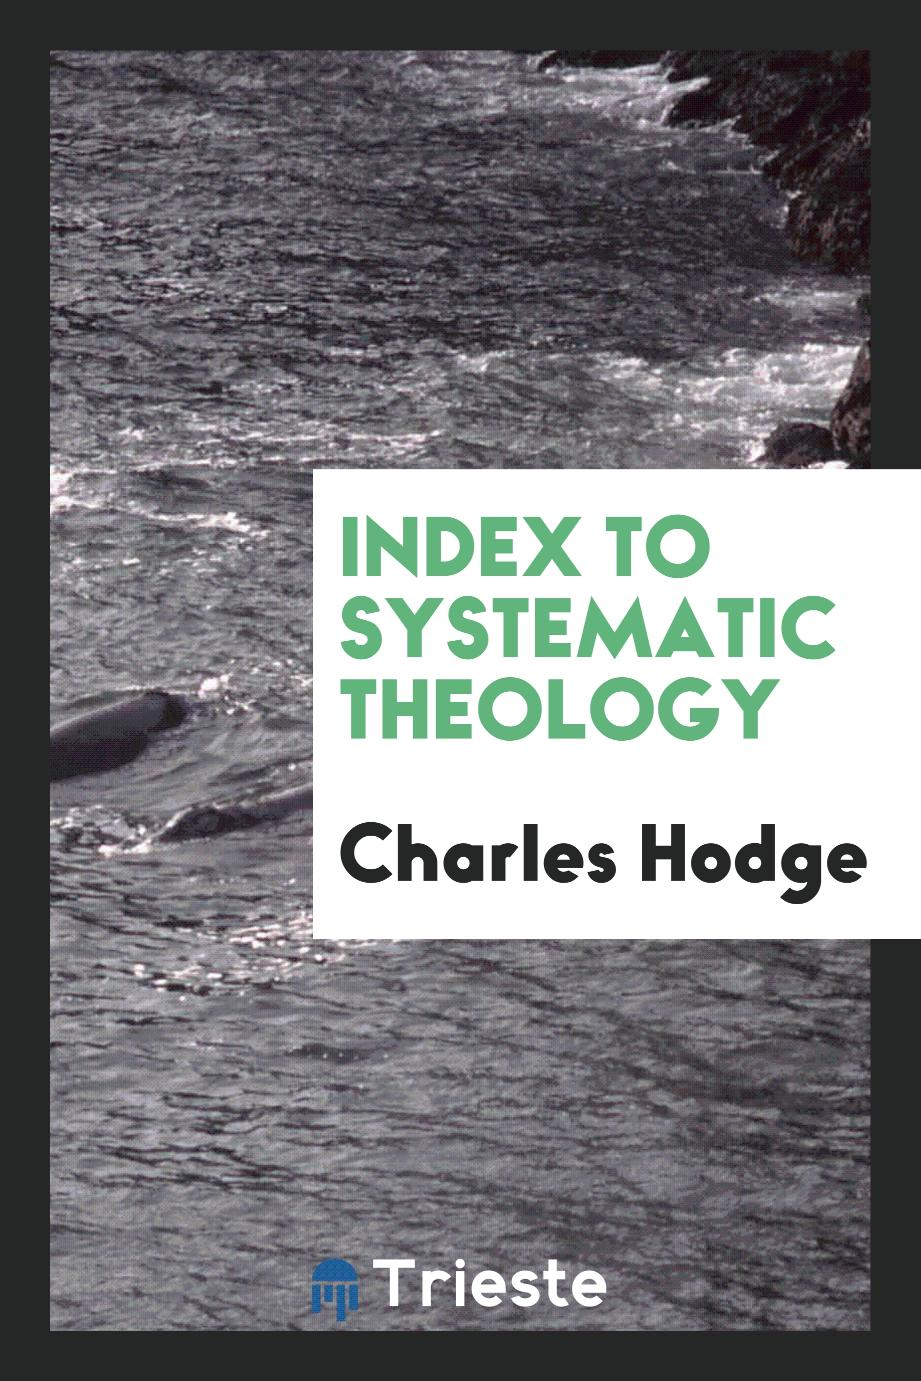 Index to Systematic Theology